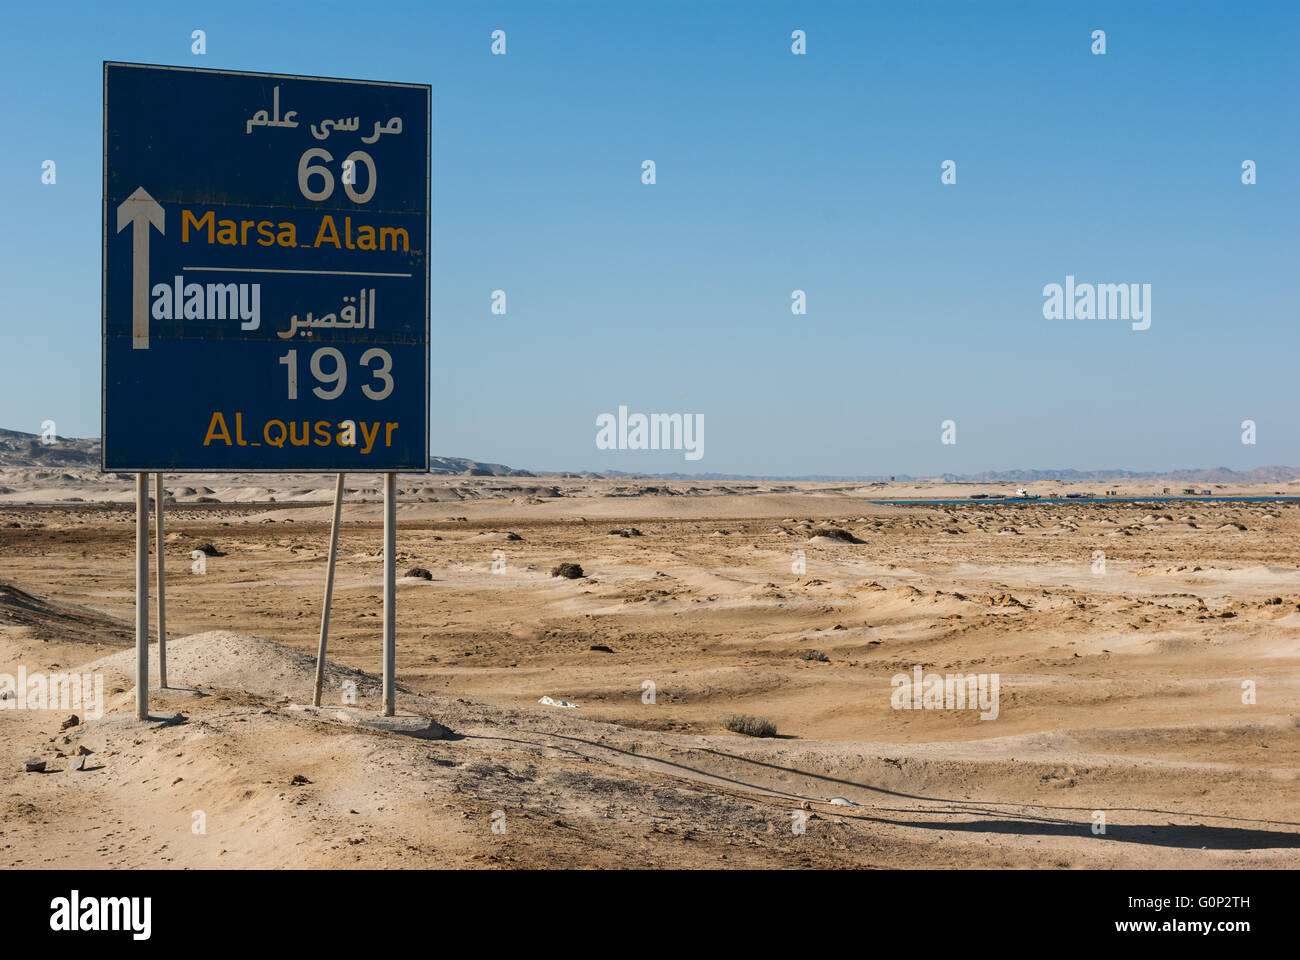 Marsa Alam 60, Al Qusayr 193 - roadsign (post sign) by the Marsa Alam Berenice Road, Upper Egypt - Stock Image